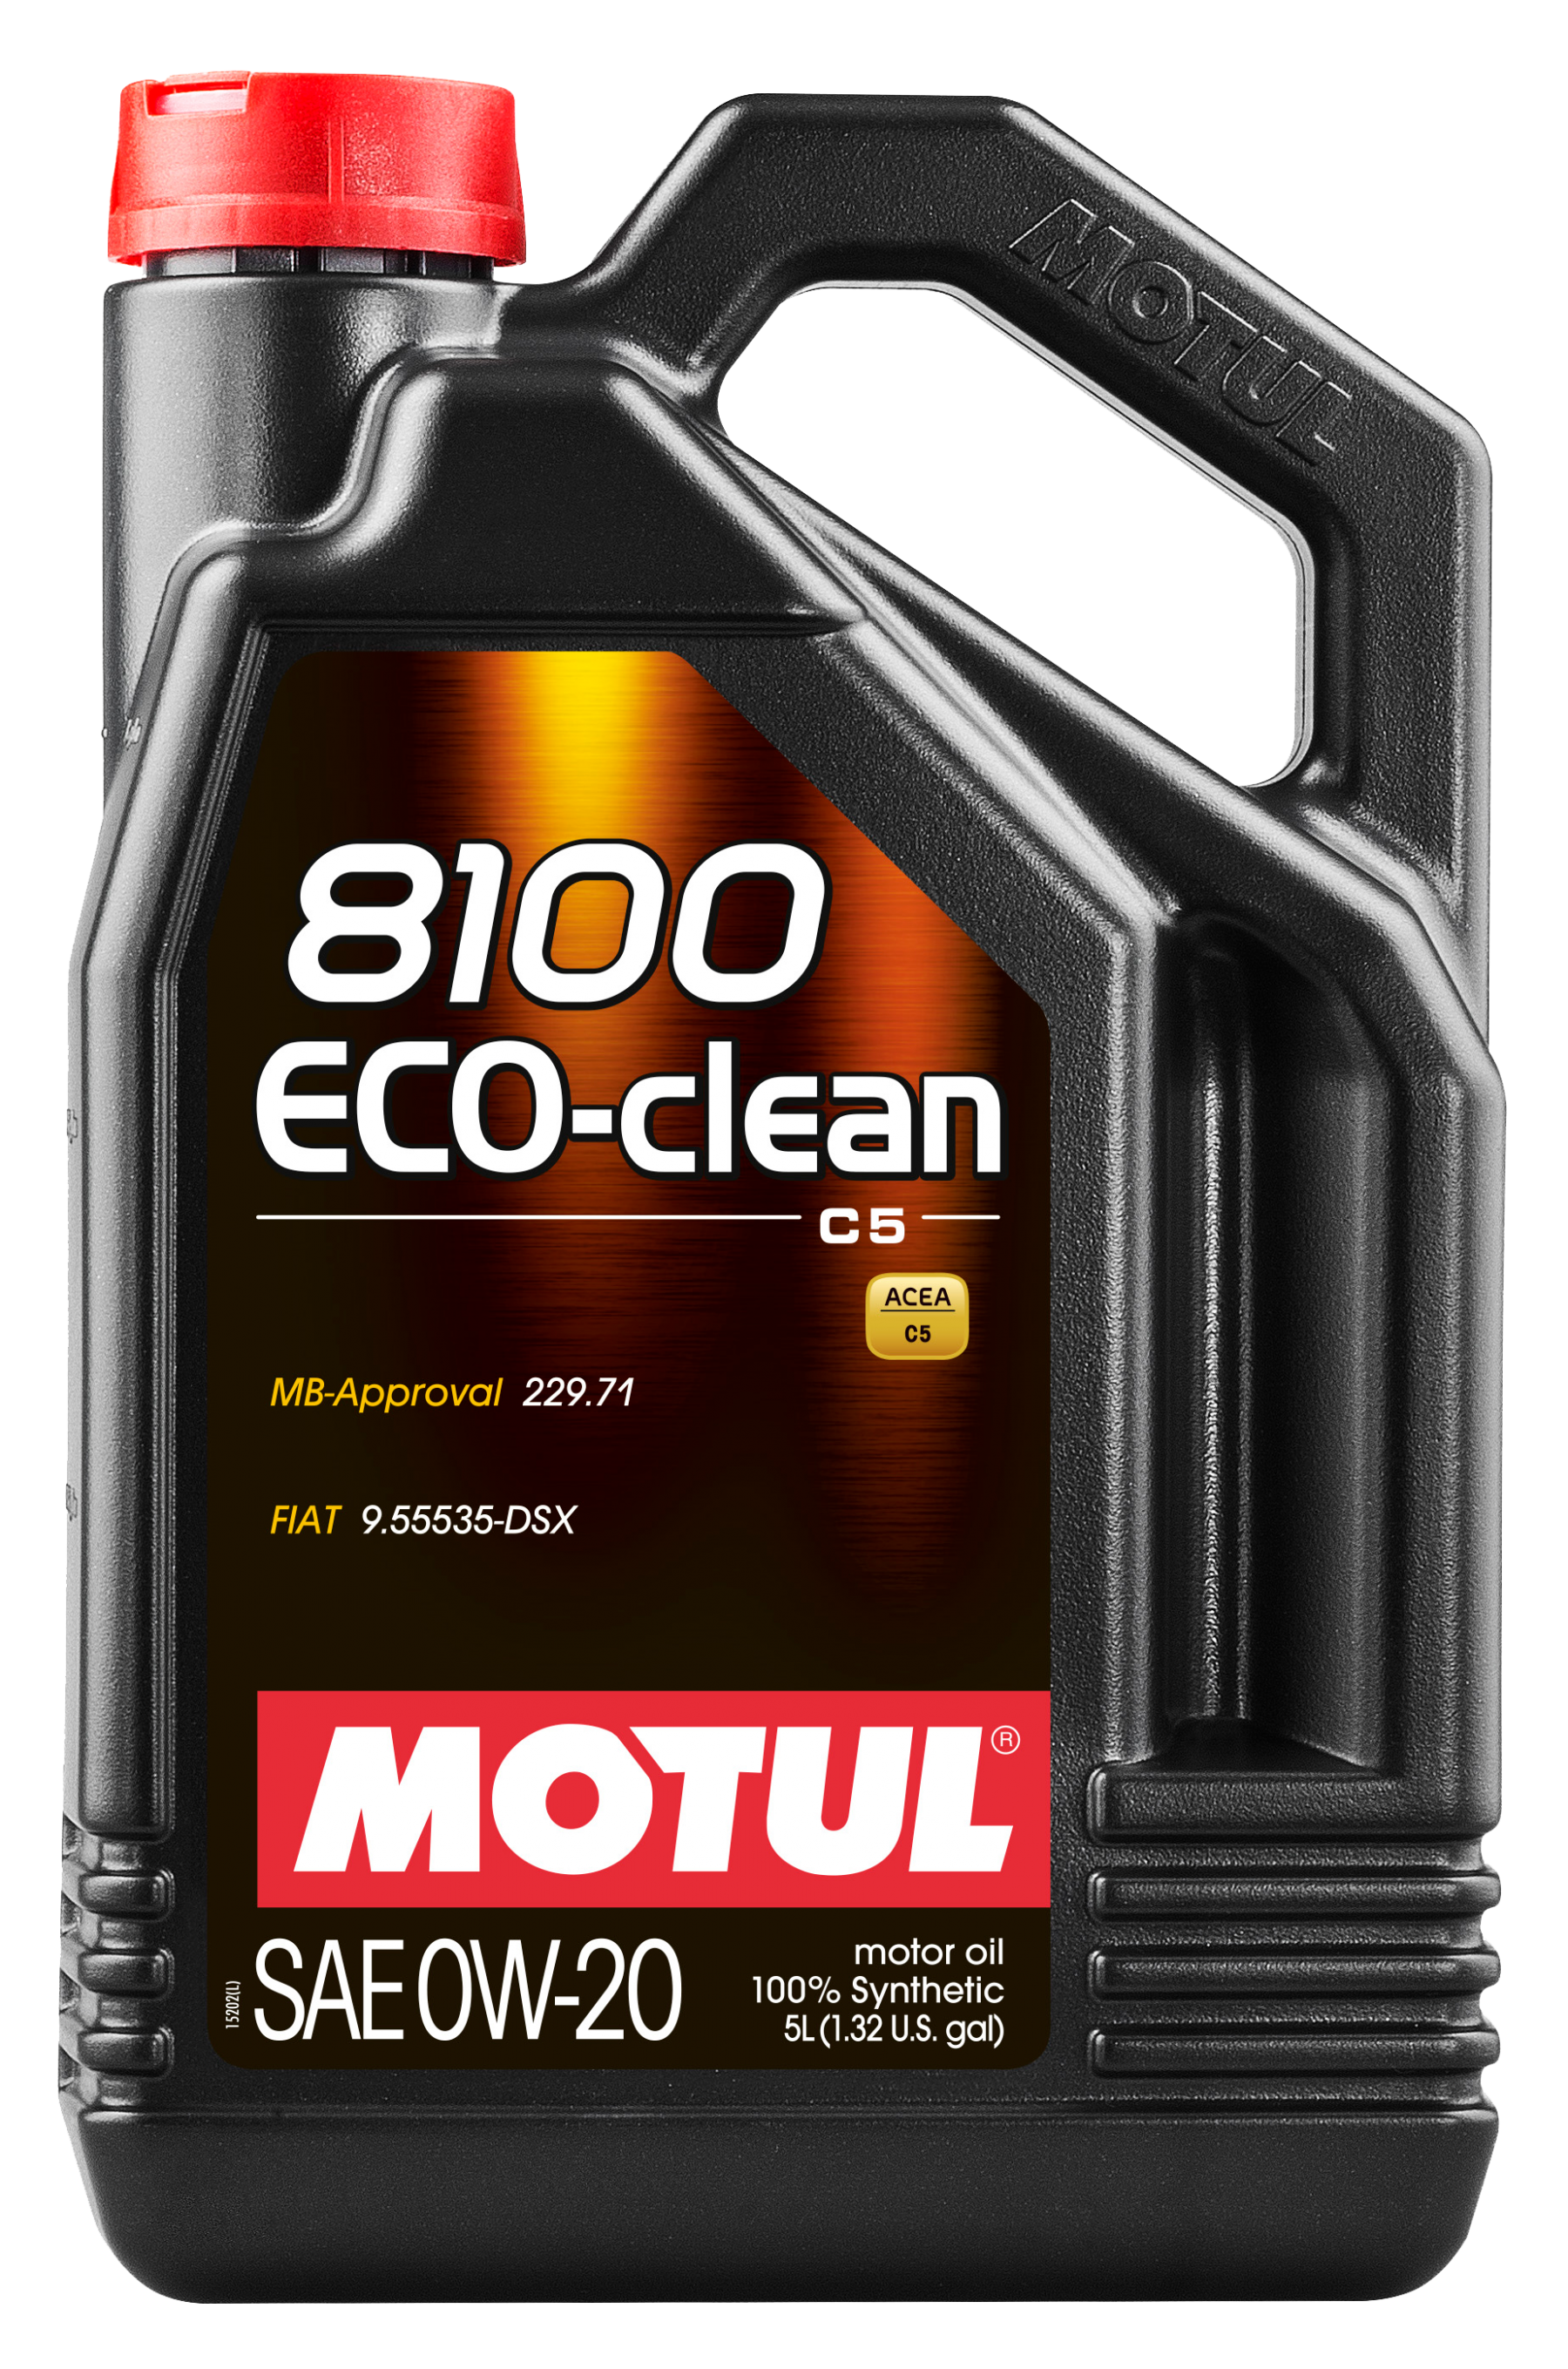 Motul 8100 Eco-Clean 0w-20 5 л